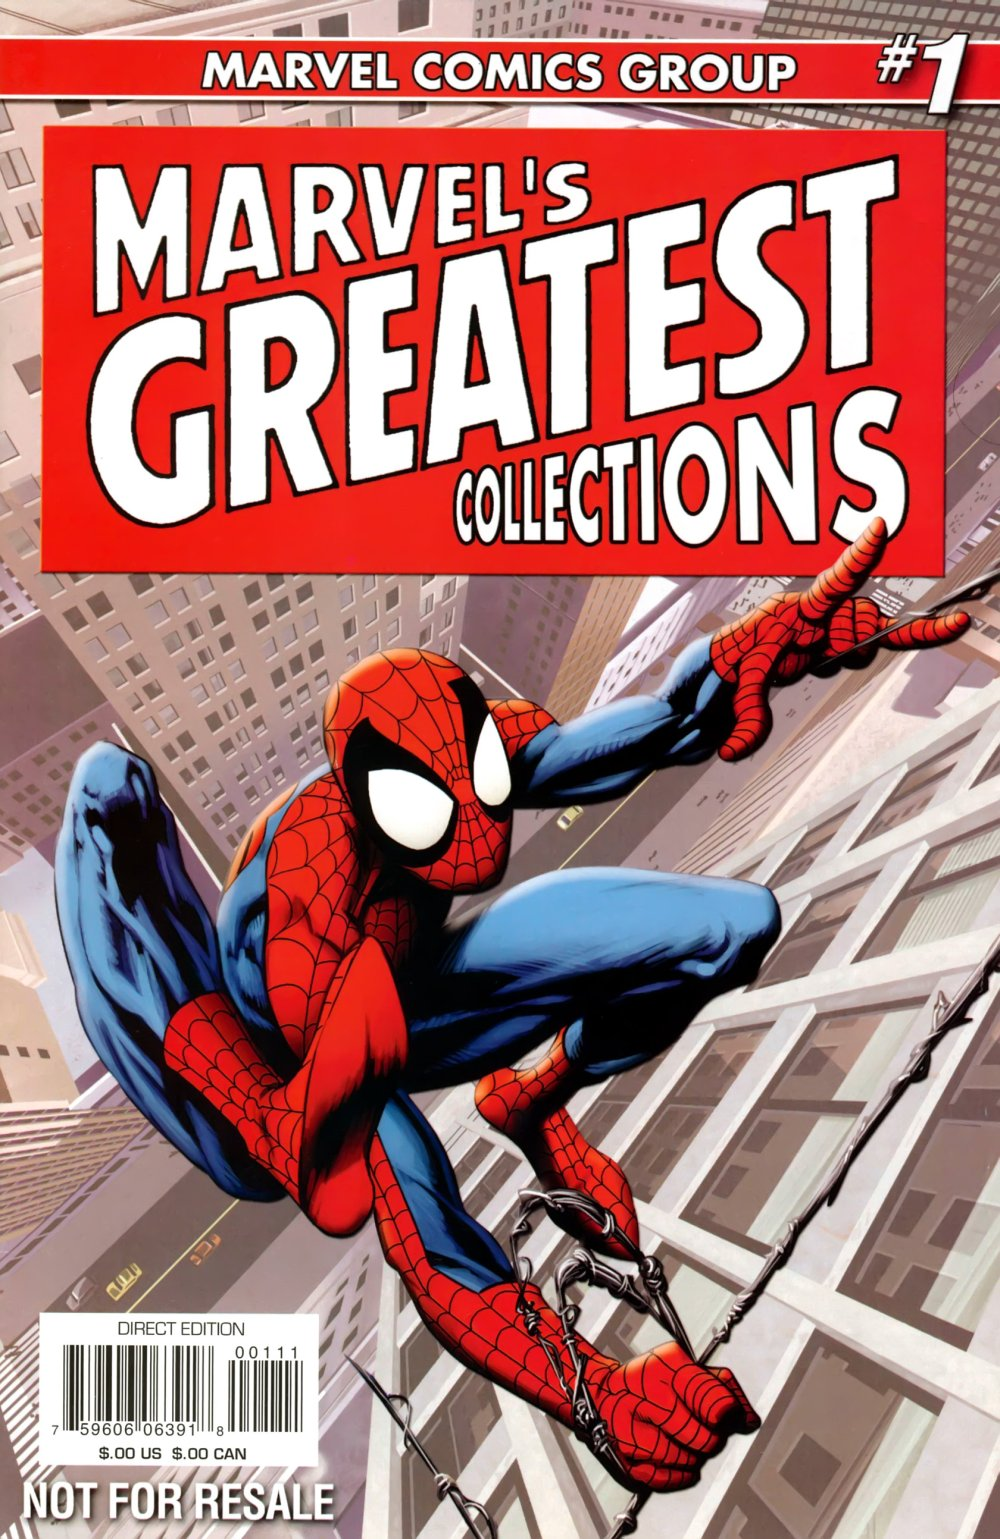 Marvels Greatest Collections [Marvel] OS1 0001b.JPG